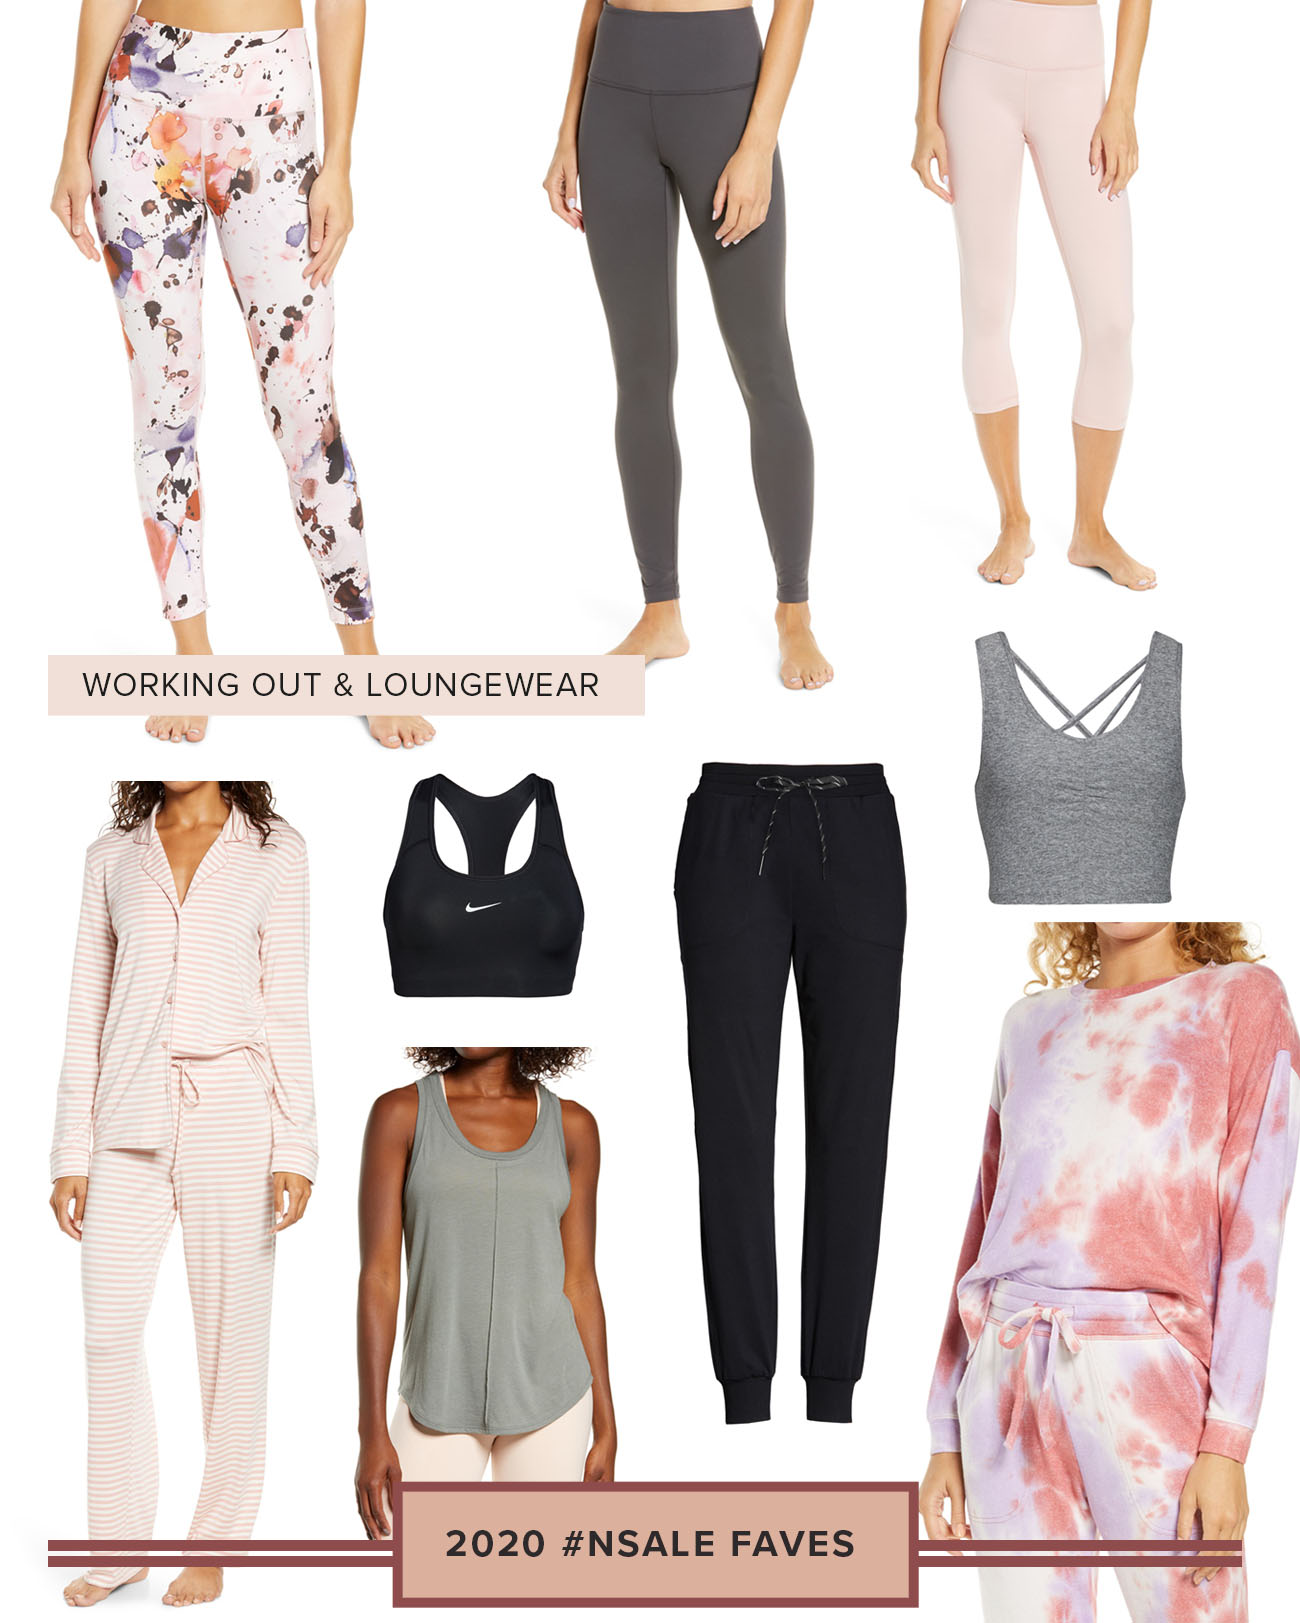 2020 Nordstrom Sale Favorites for Working Out